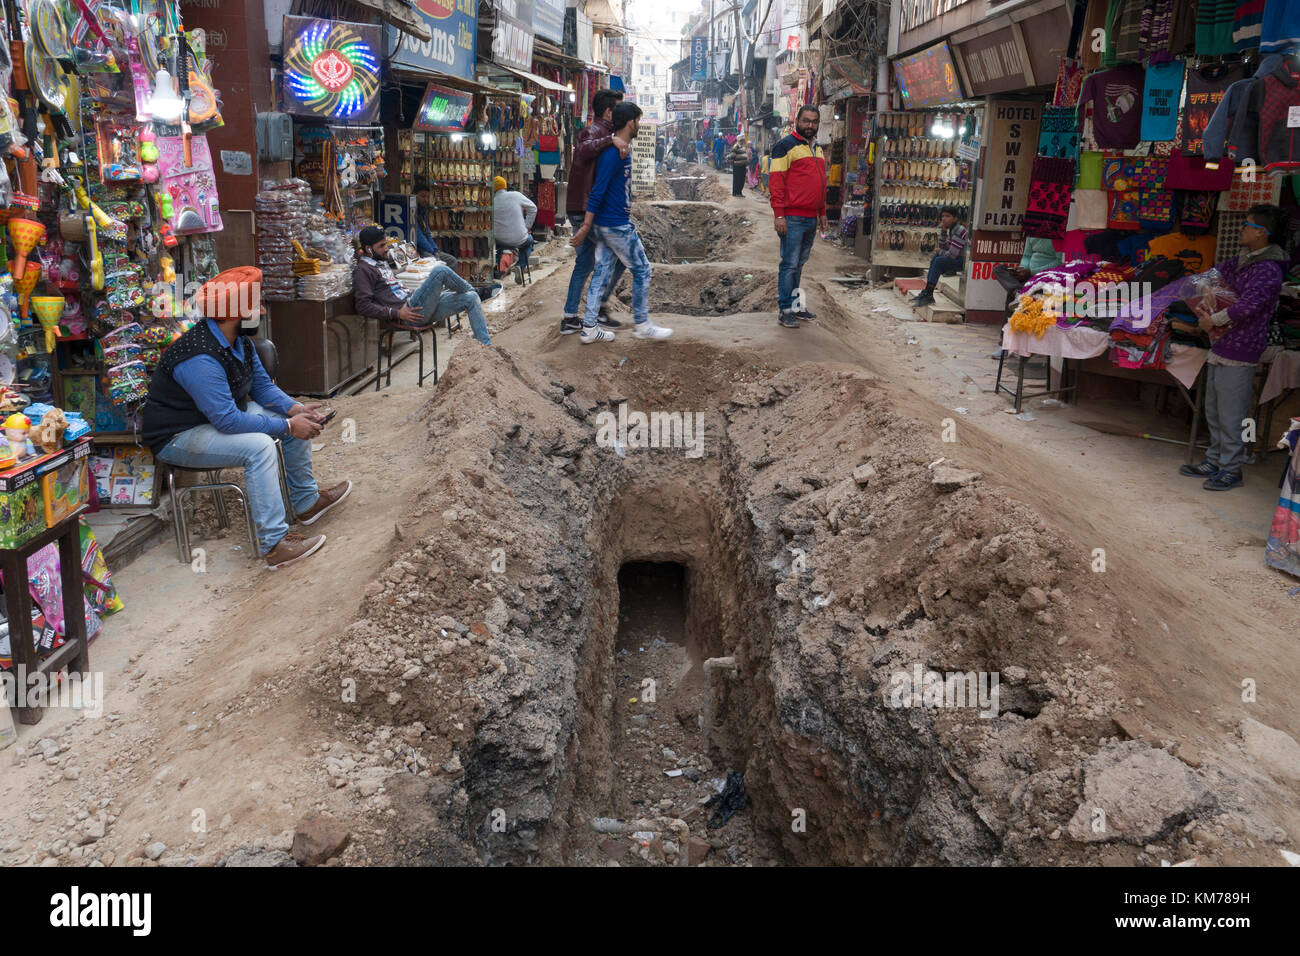 Shop keepers disrupted by drain laying in old town Amritsar, Pubjab, India - Stock Image